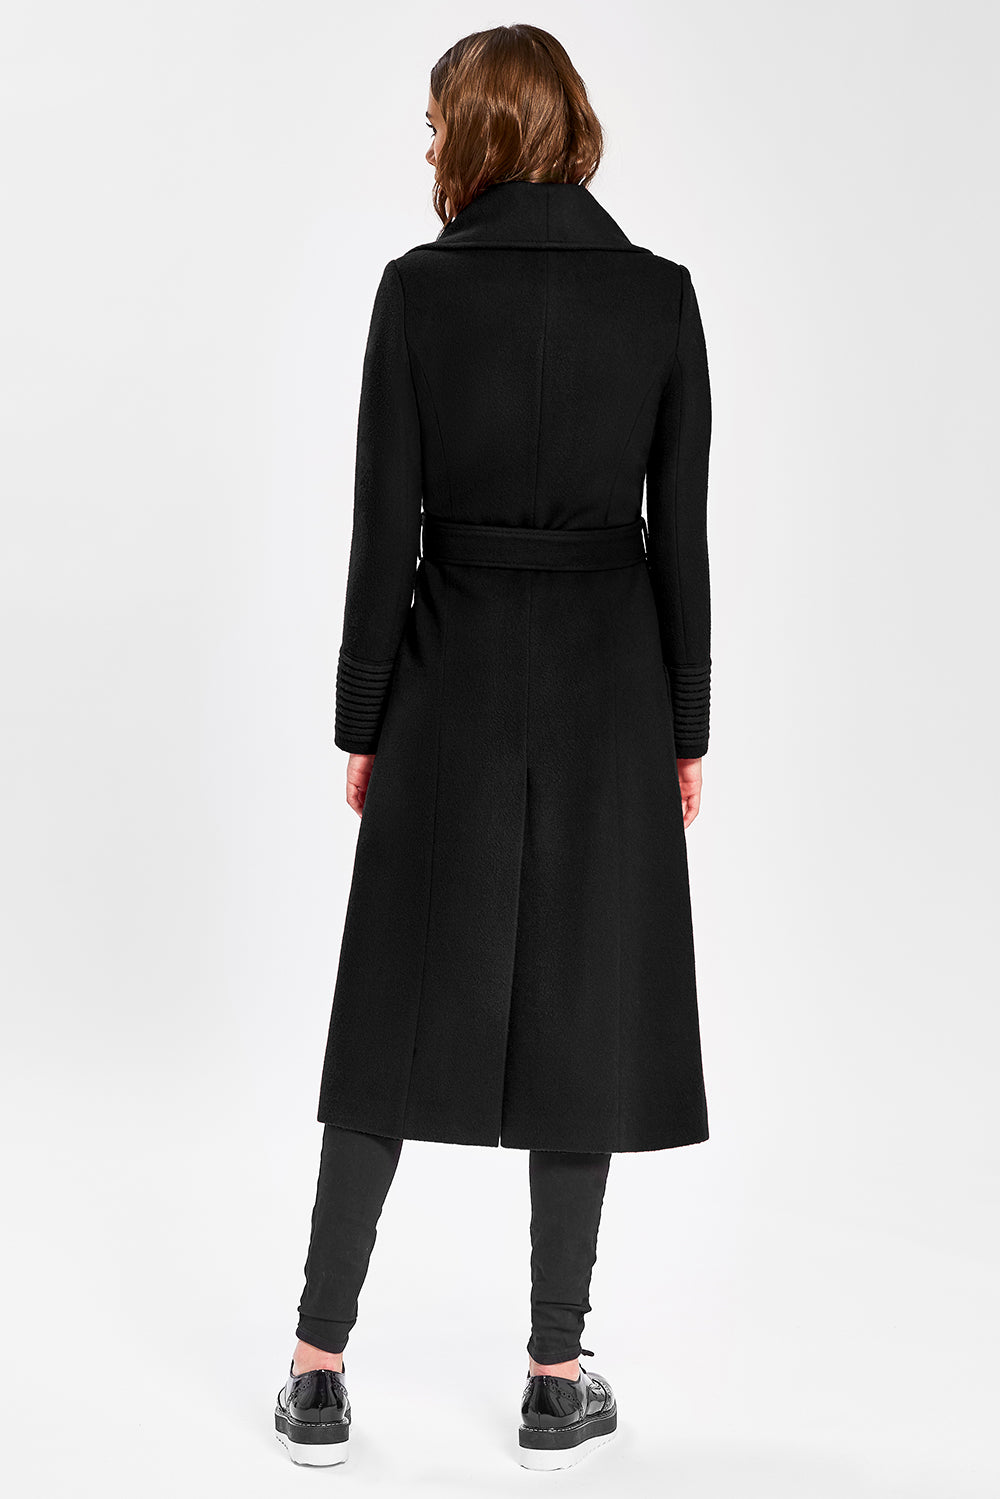 Sentaler Long Wide Collar Wrap Coat featured in Baby Alpaca and available in Black. Seen from back.